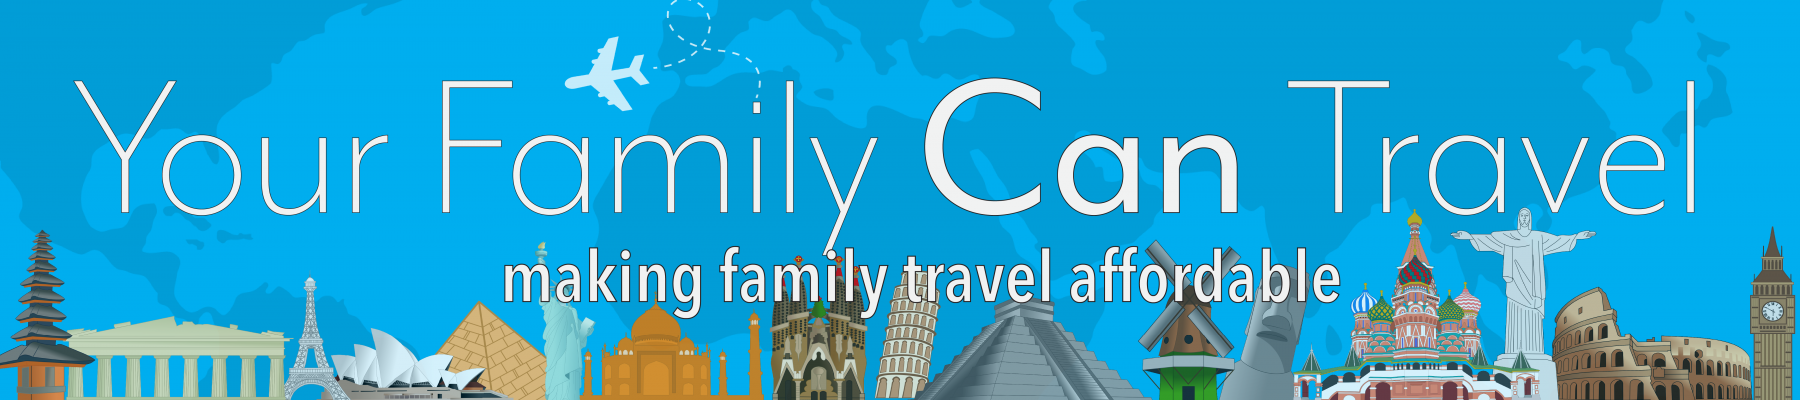 Your Family Can Travel